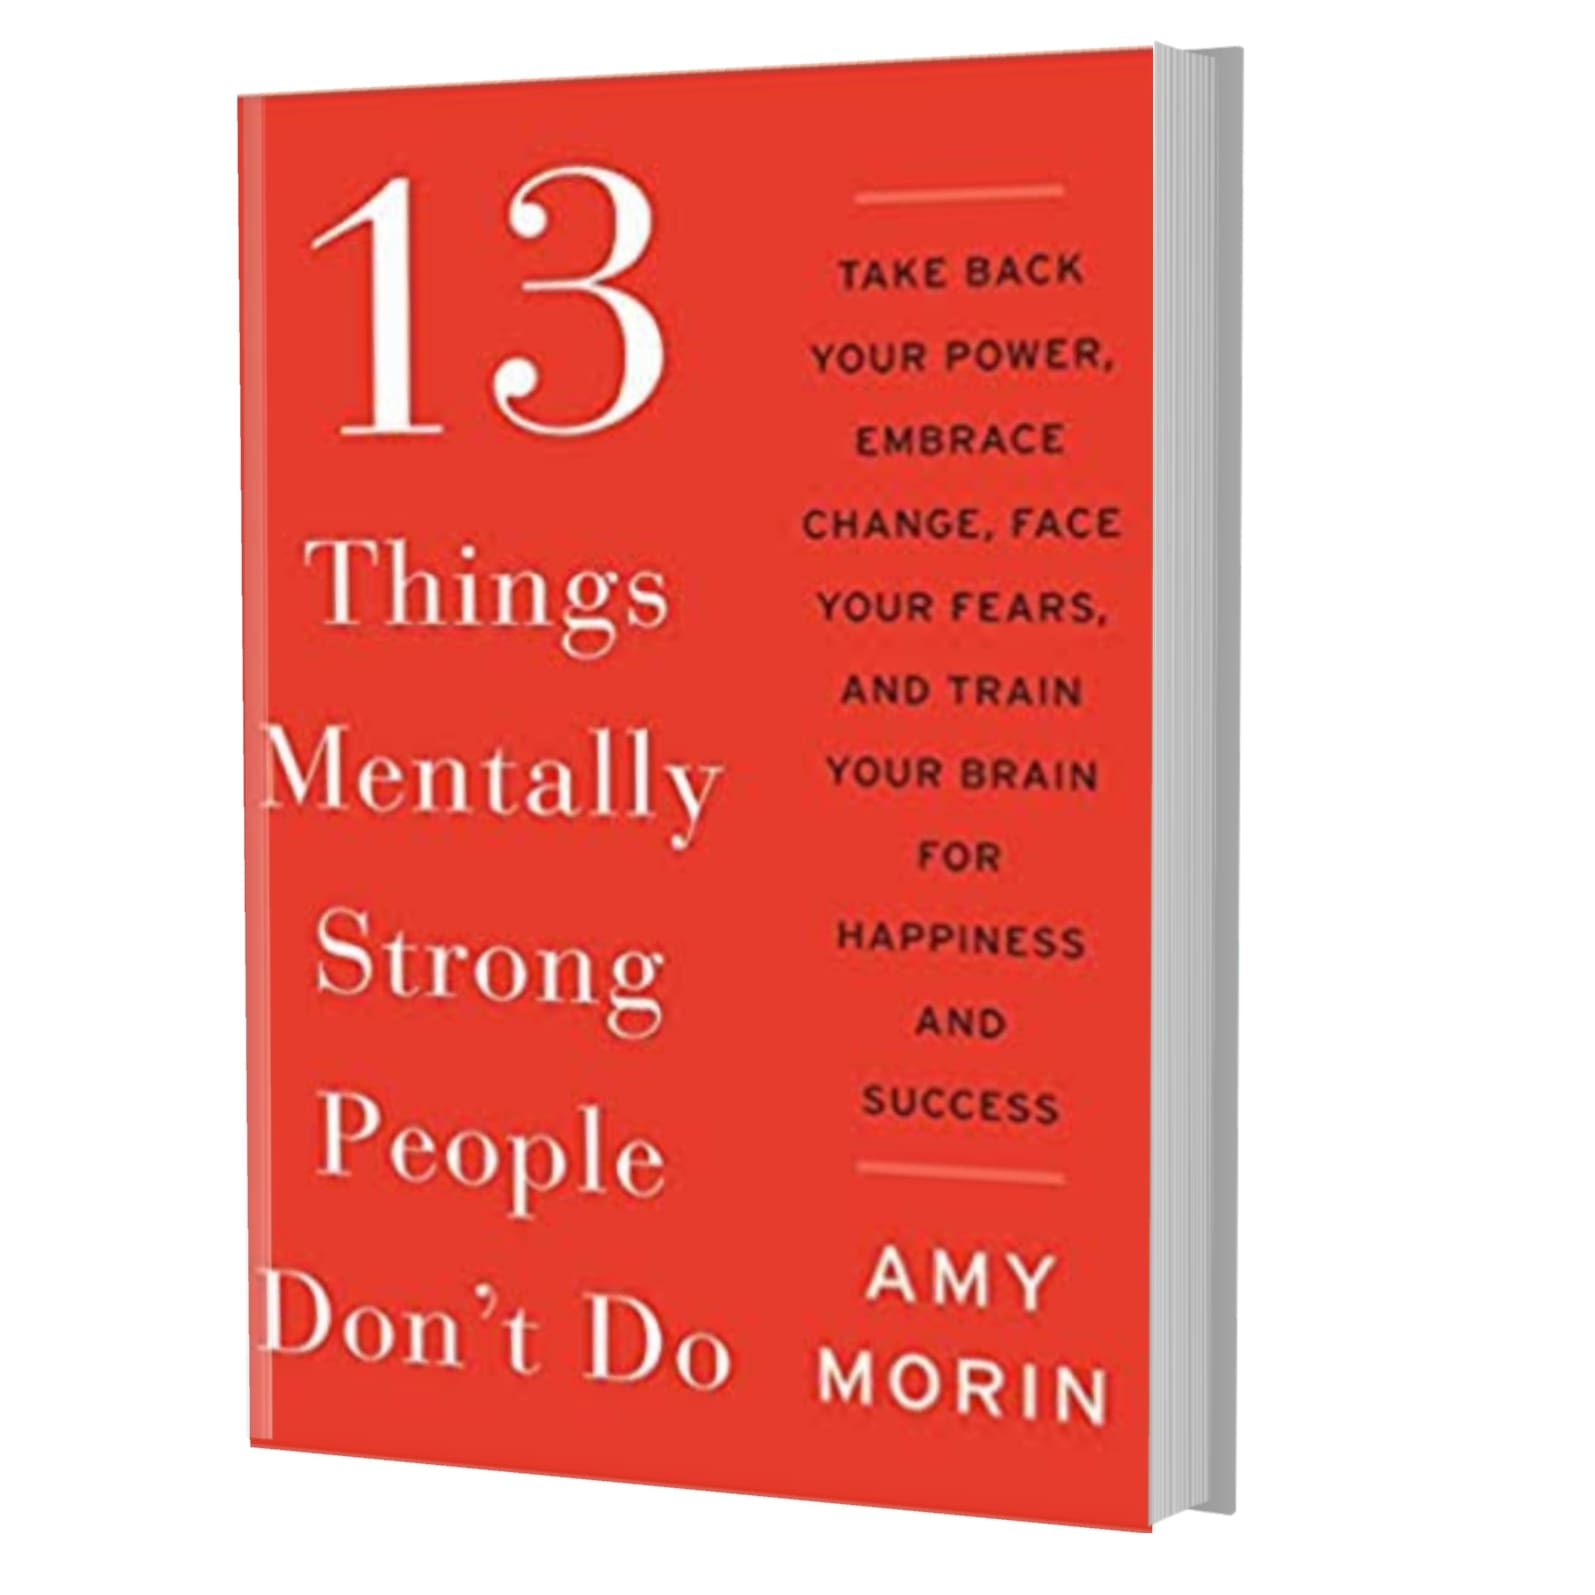 13 things mentally strong people don't do- Ami Morin